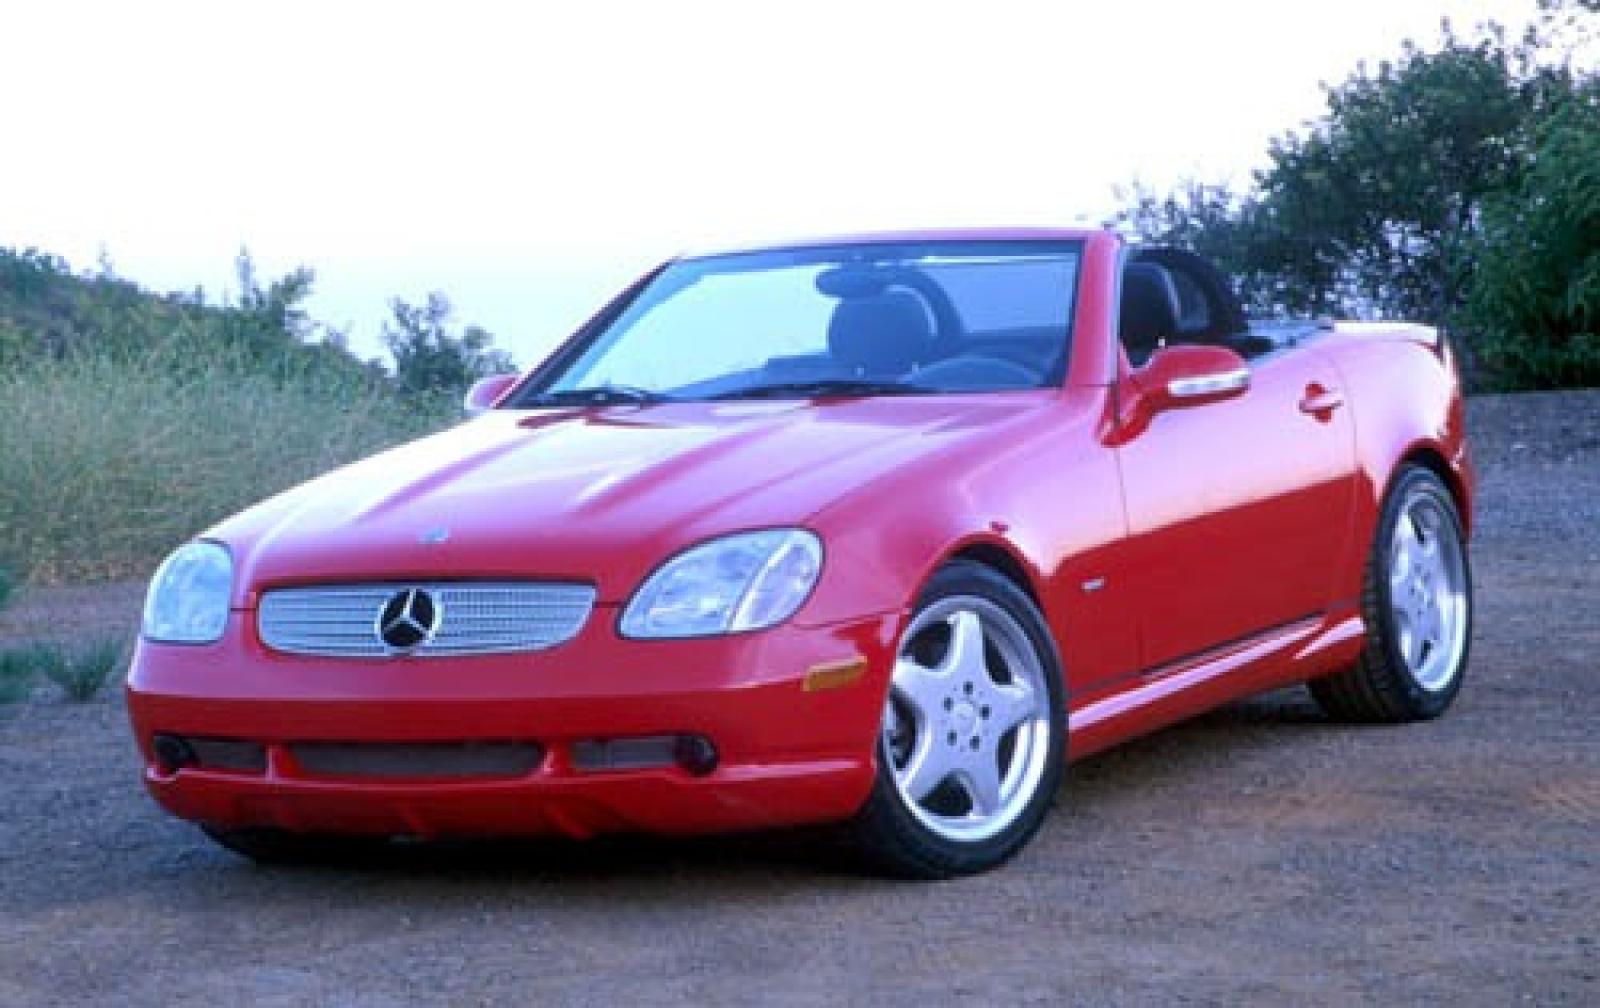 Mercedes Slk Cabriolet 2016 Benz Class Price Photos 320 Wiring Diagram 2000 230 Convertible Diagrams